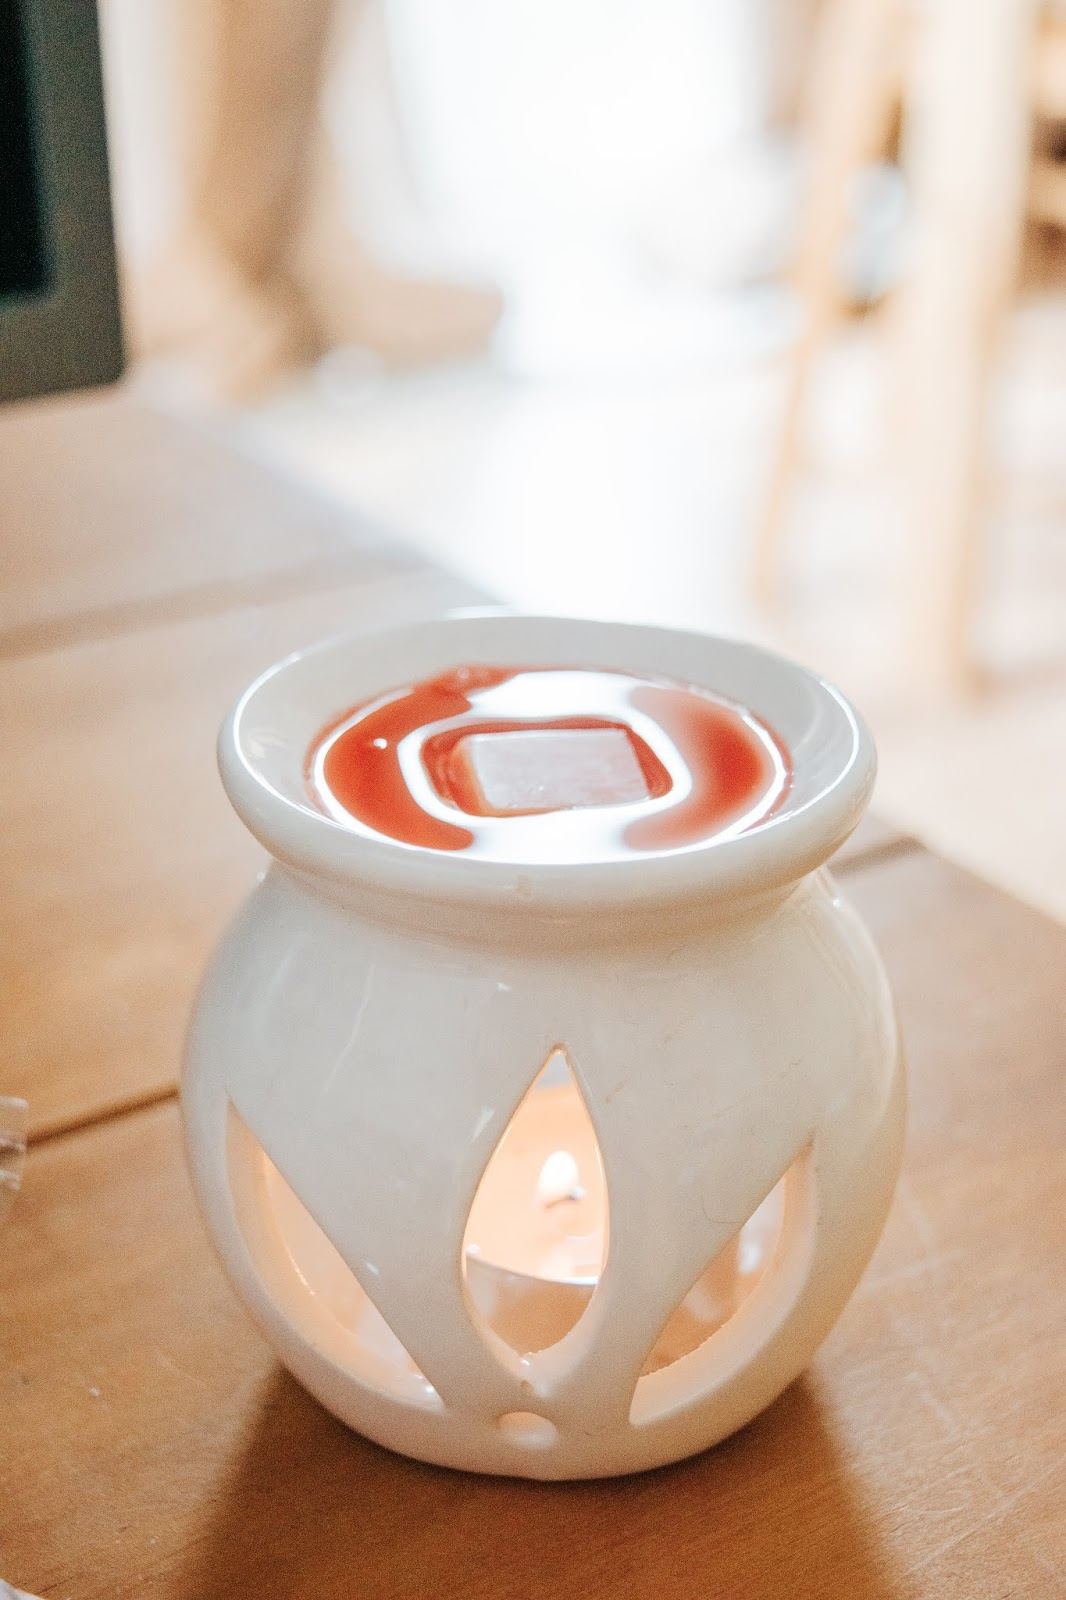 A white wax melt burner with a red and orange wax melt melting on top